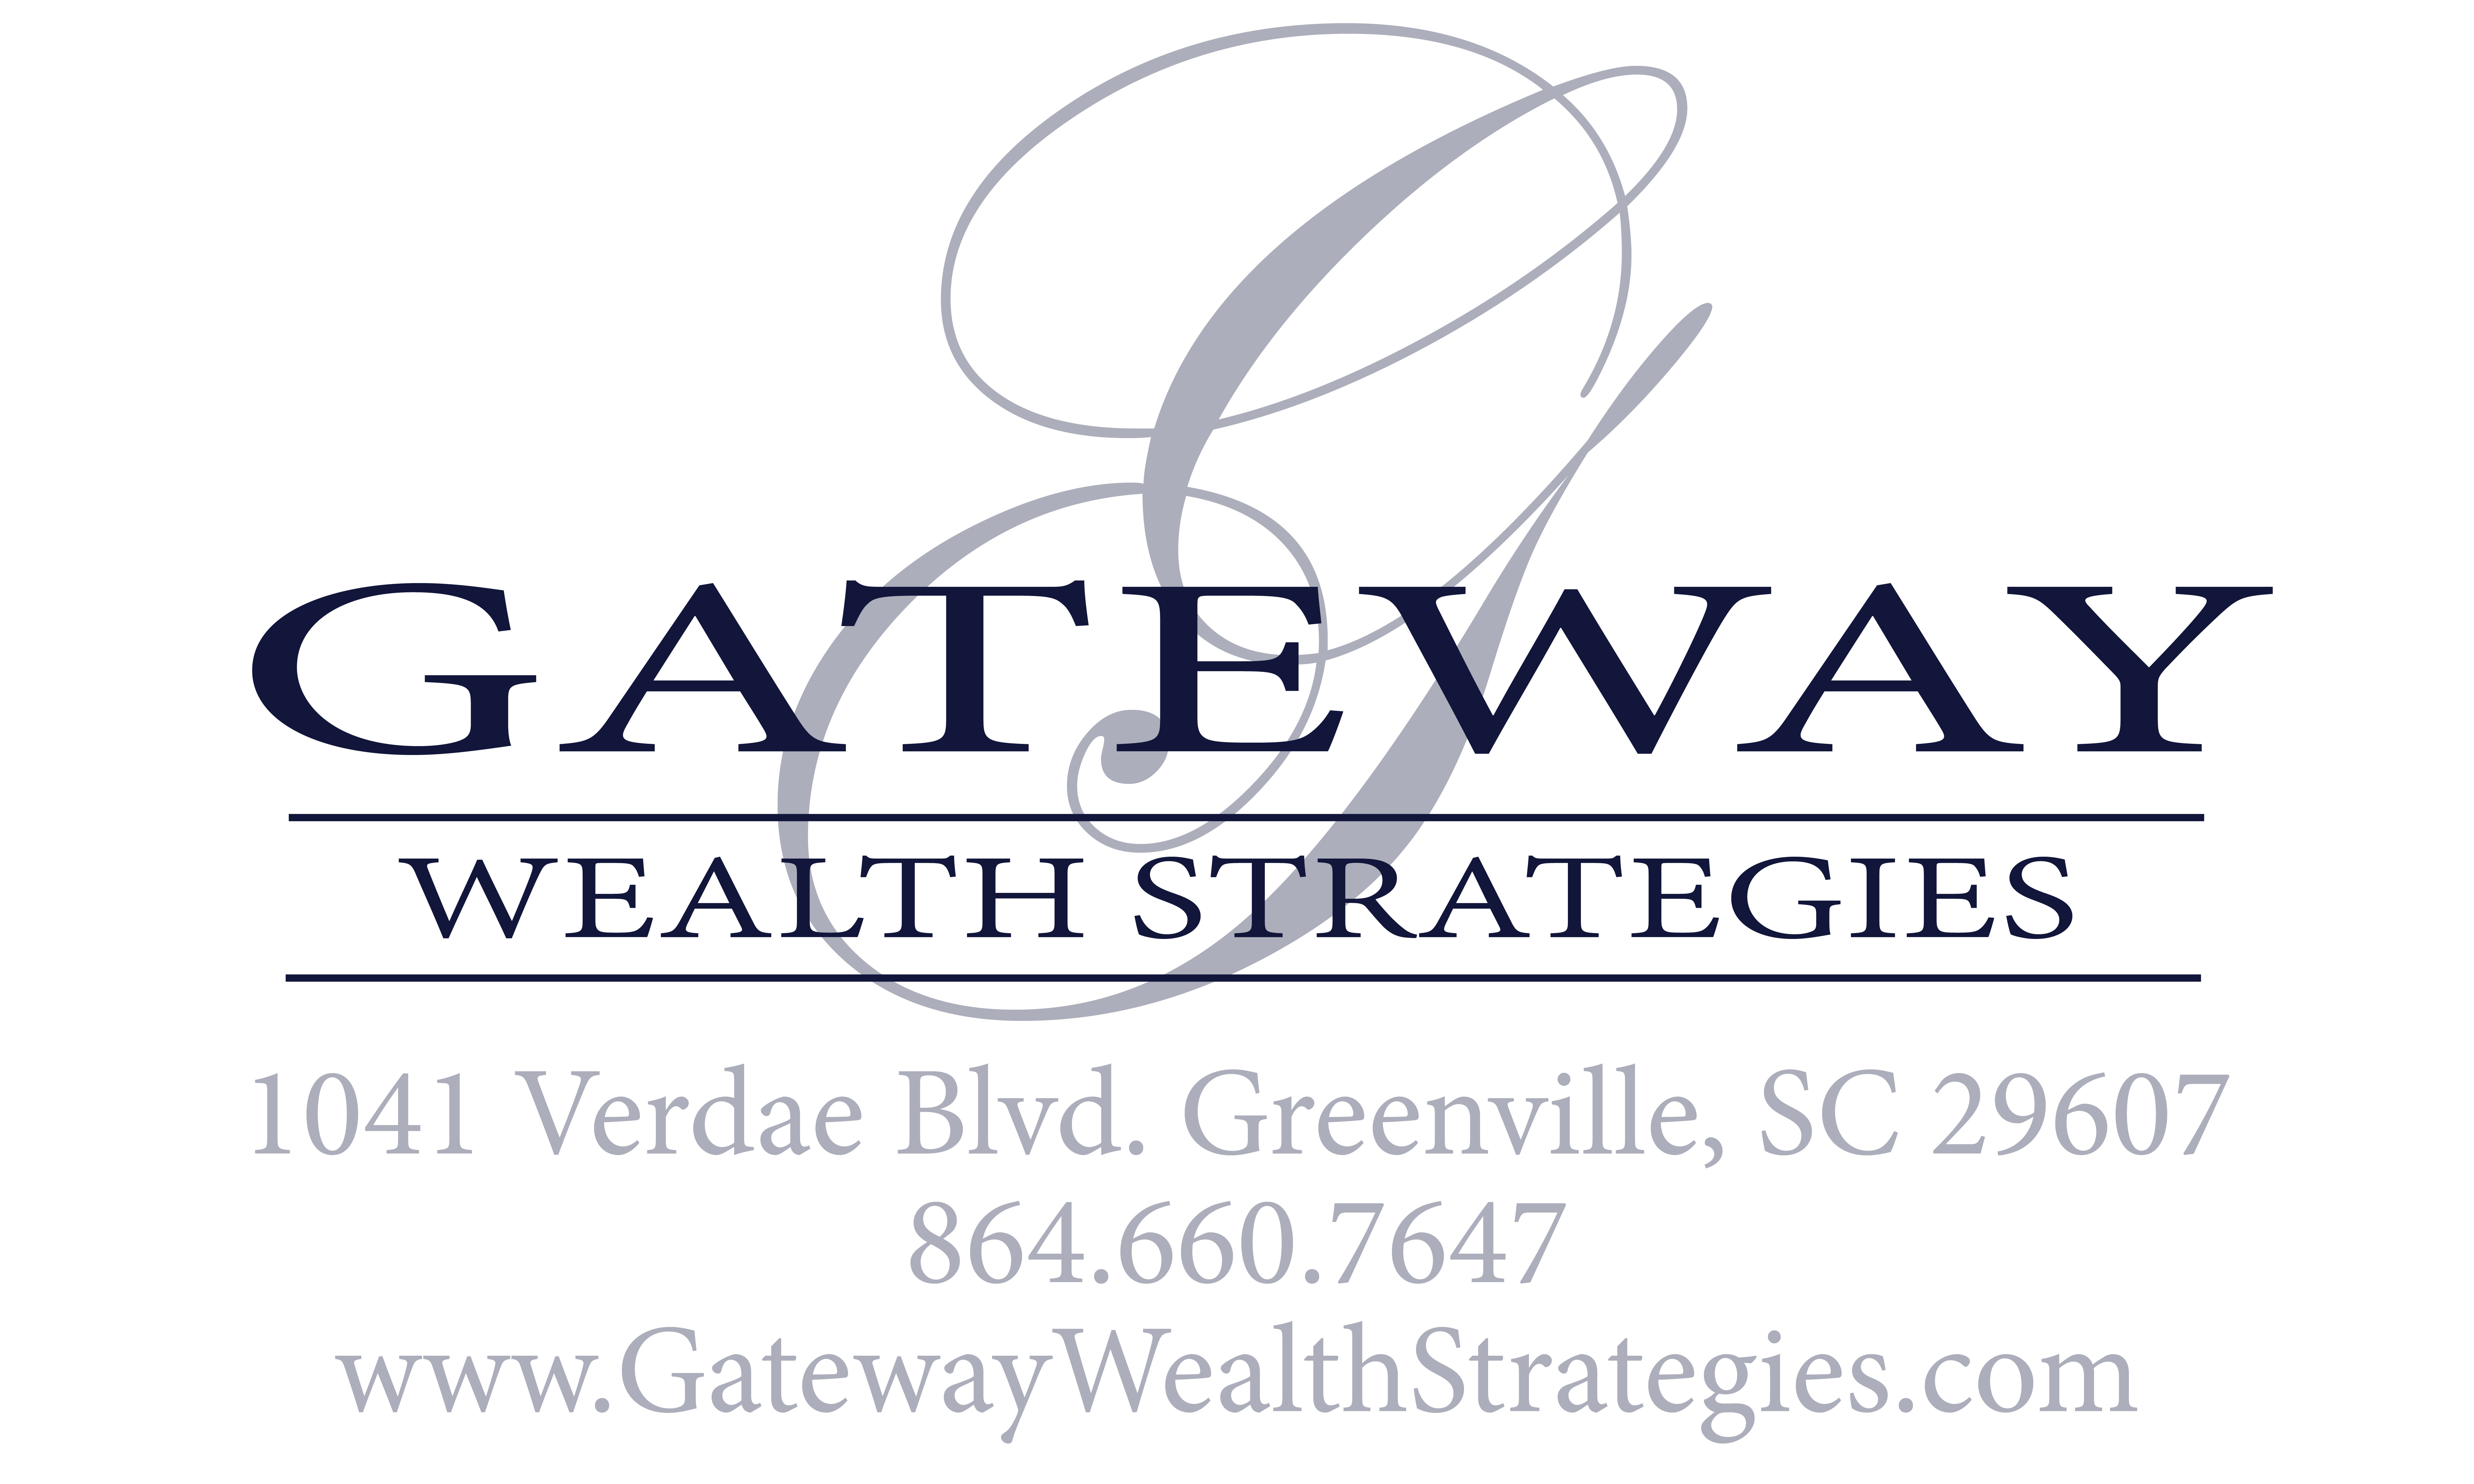 Gateway Wealth Strategies – Raymond James